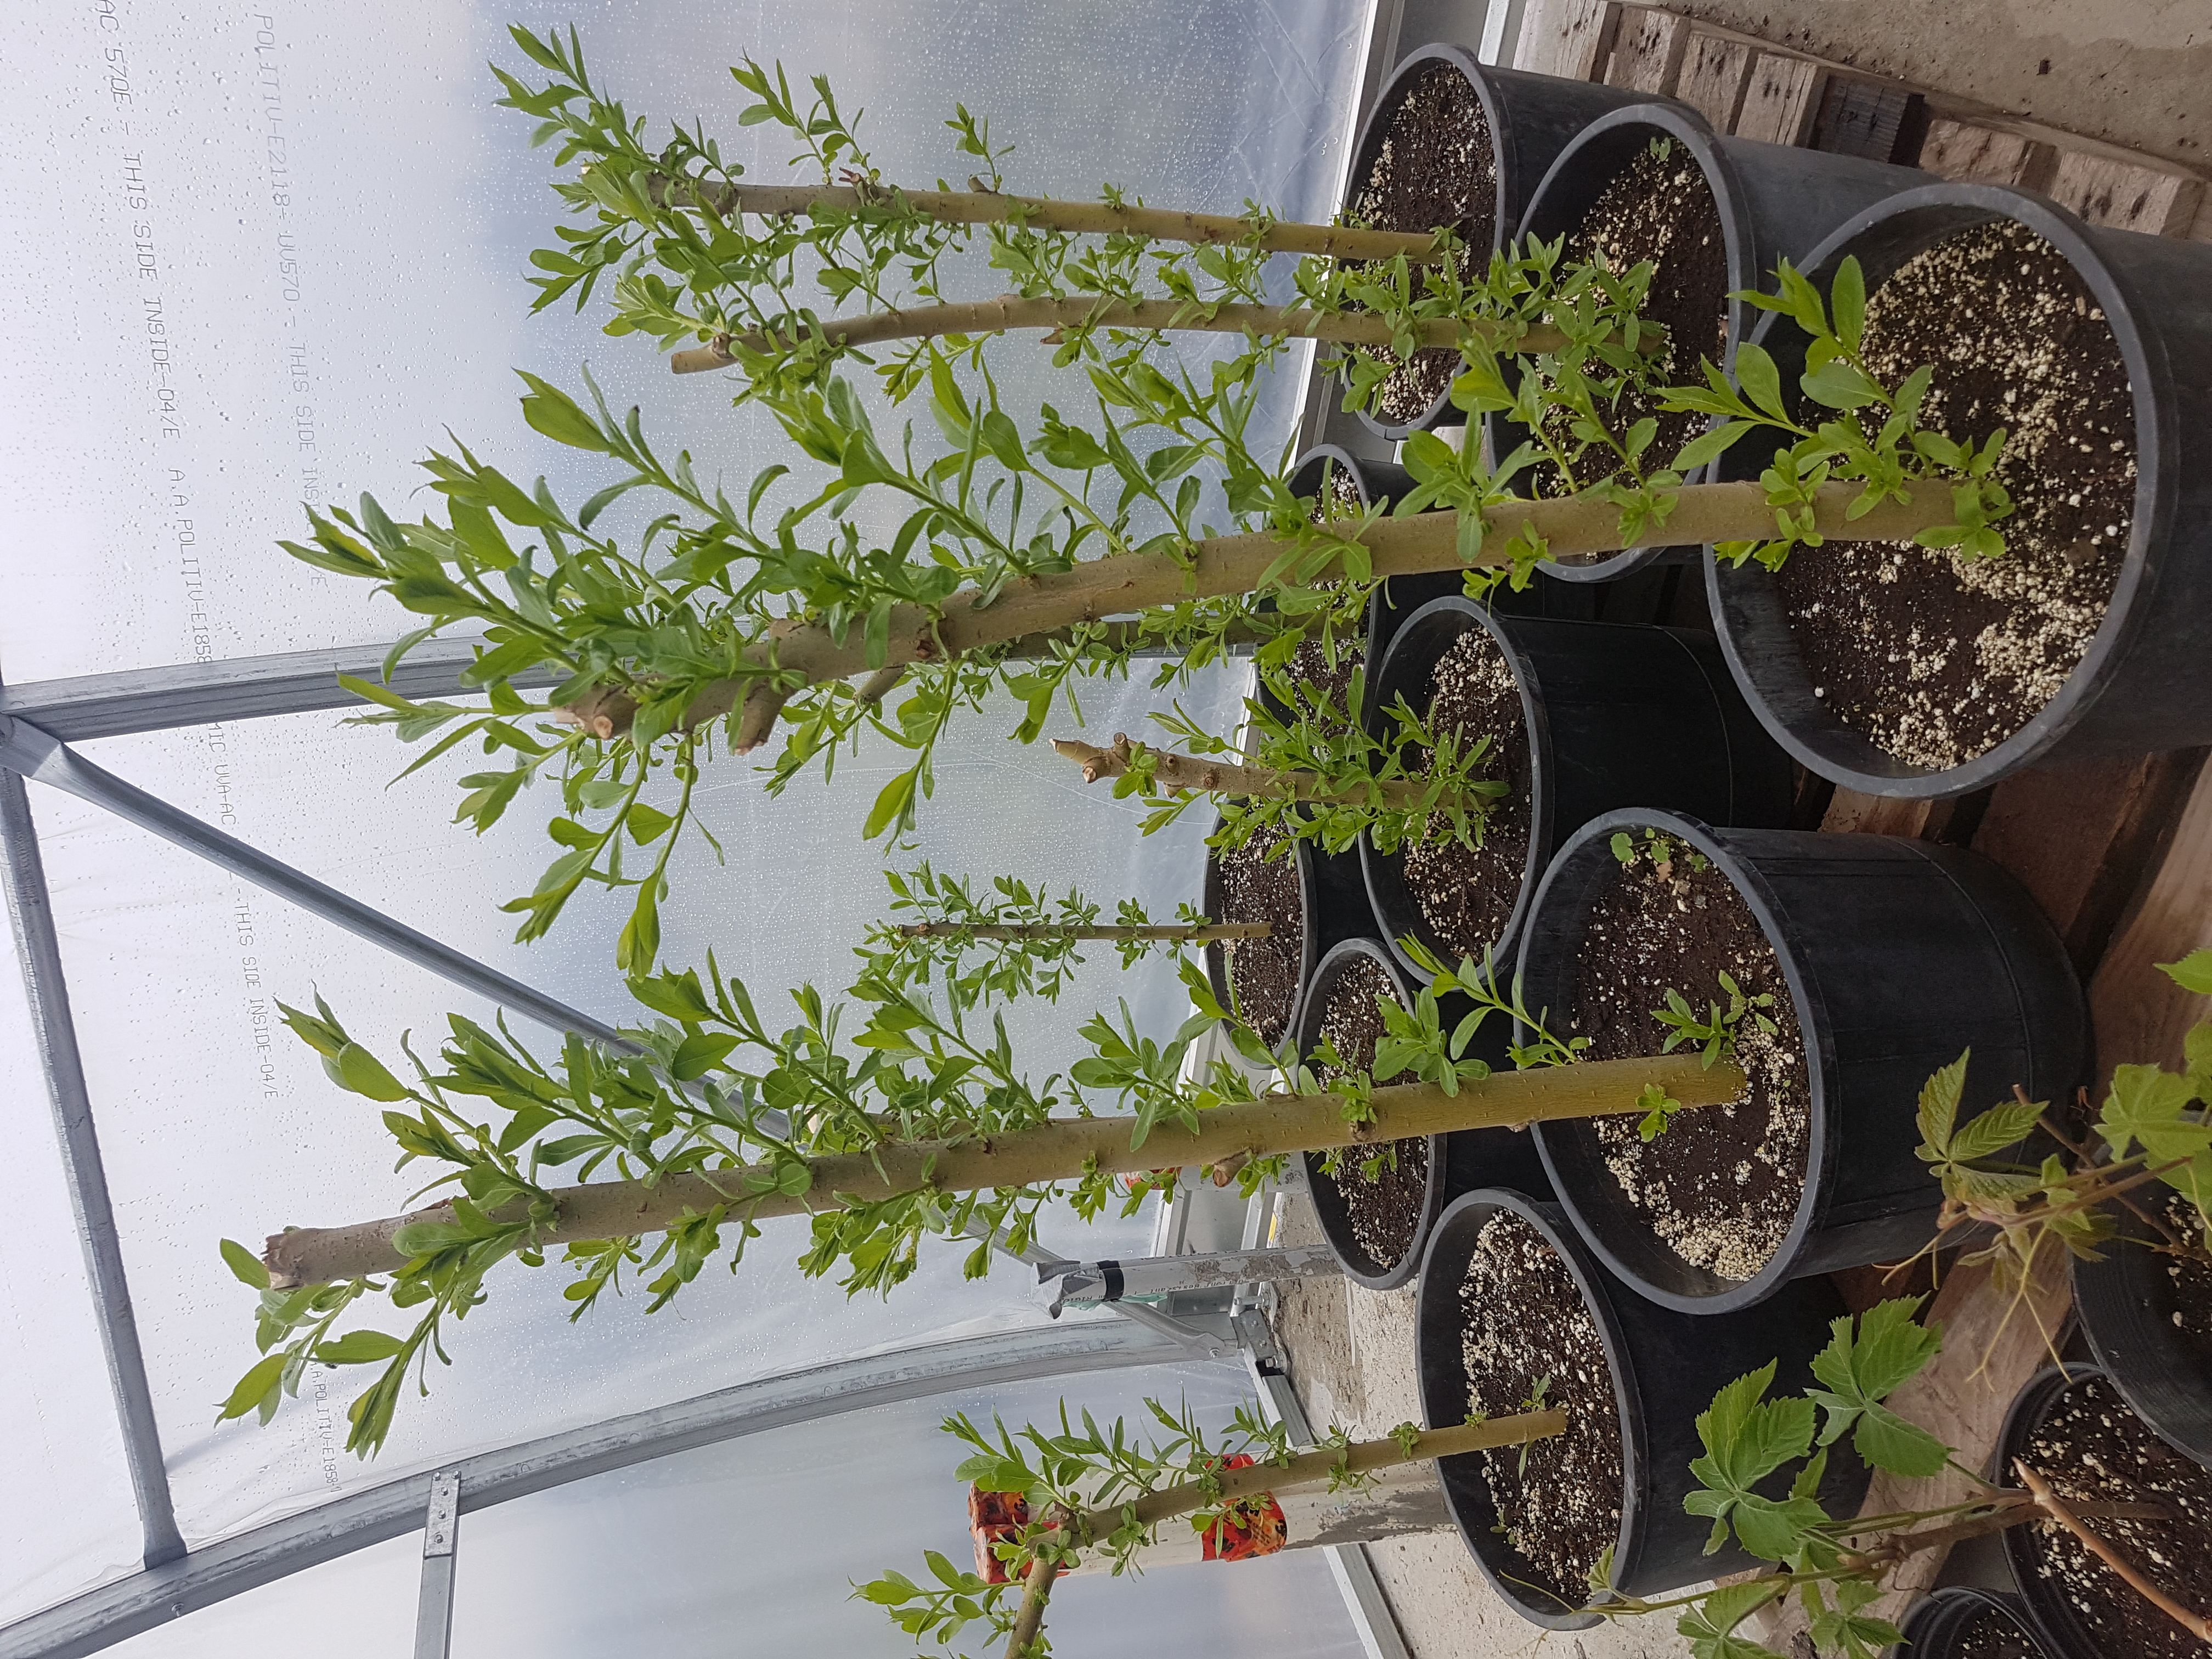 Pacific willow cuttings